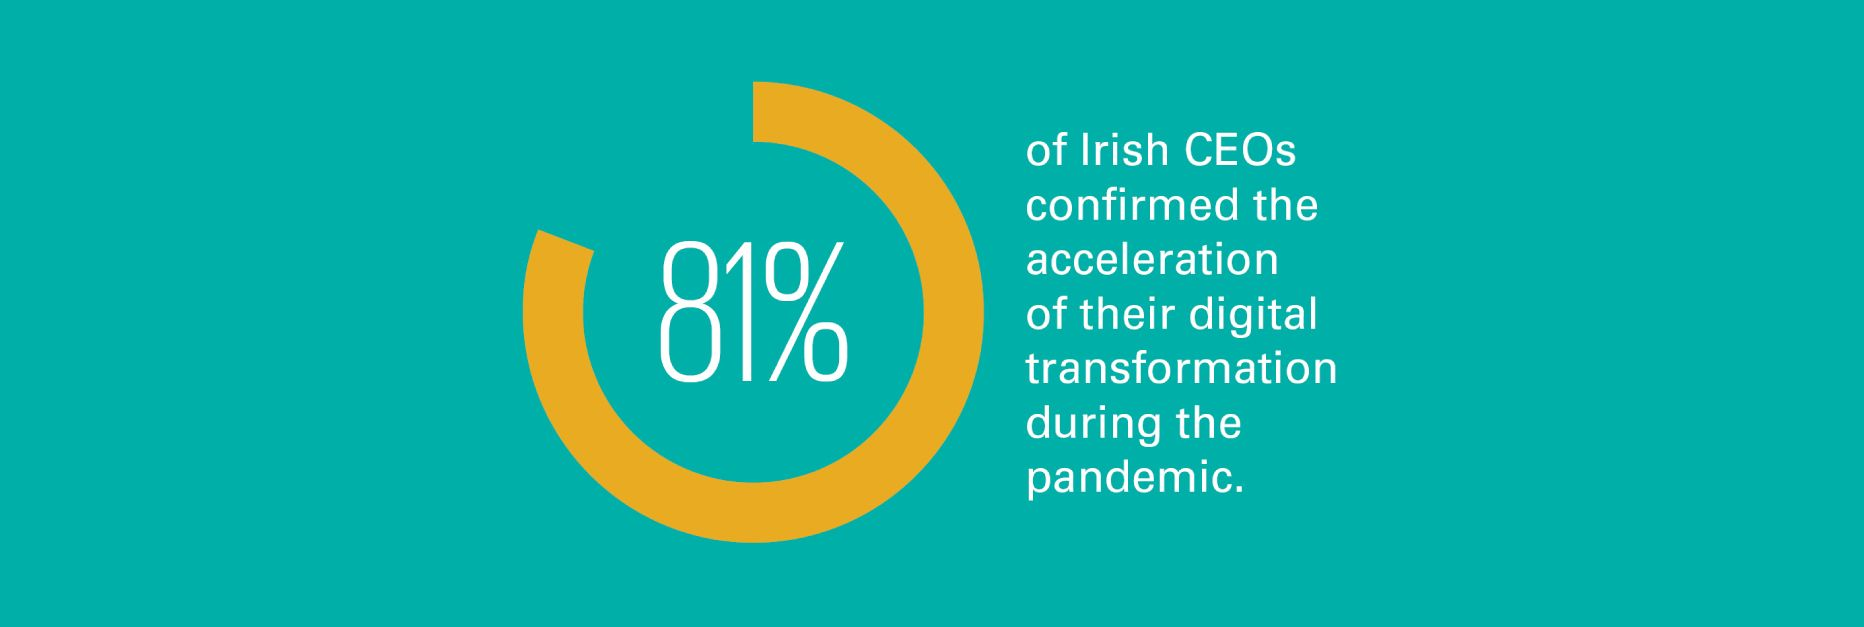 81% of Irish CEOs confirmed the acceleration of their digital transformation during the pandemic